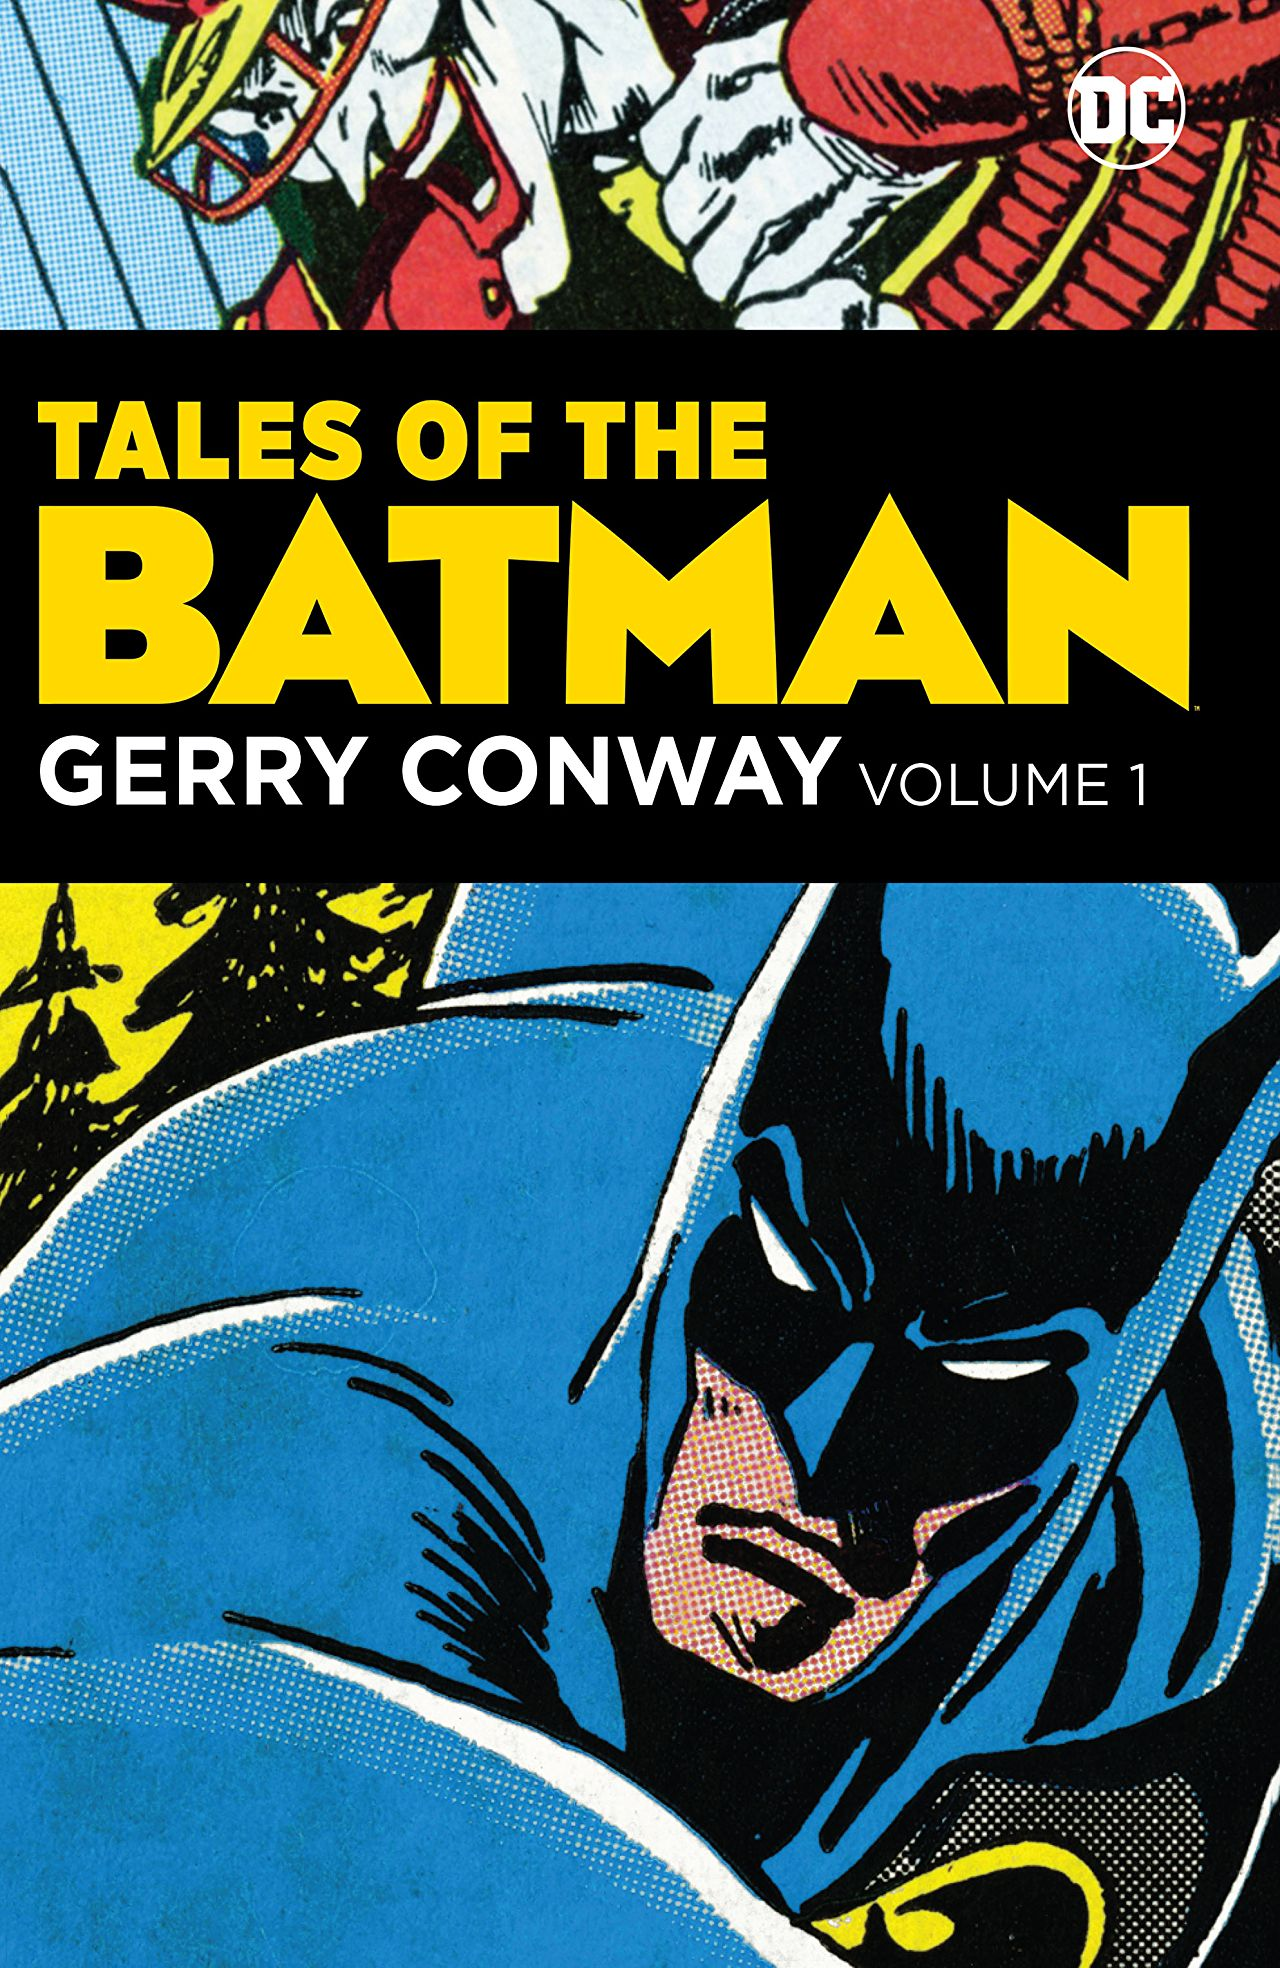 Tales of the Batman: Gerry Conway Vol. 1 (Collected)